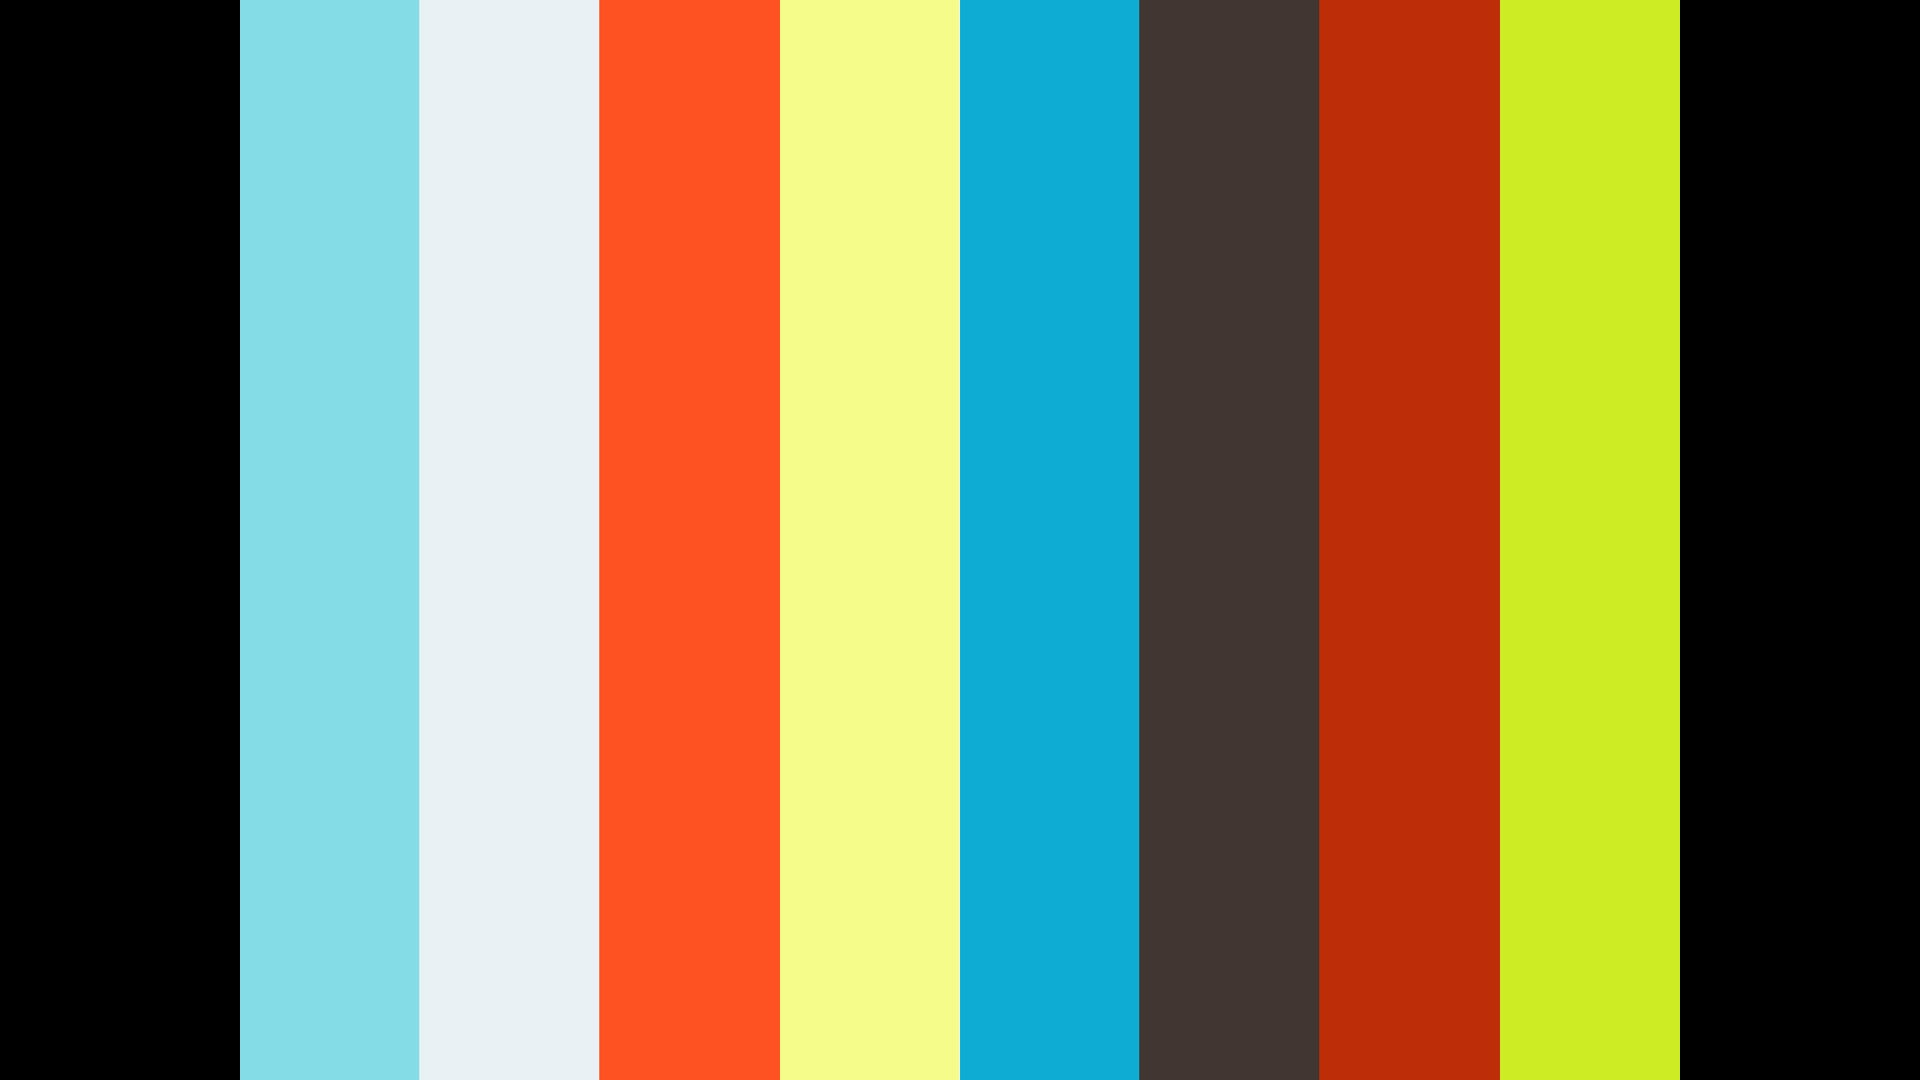 THE RIDE OF SIXSENSE